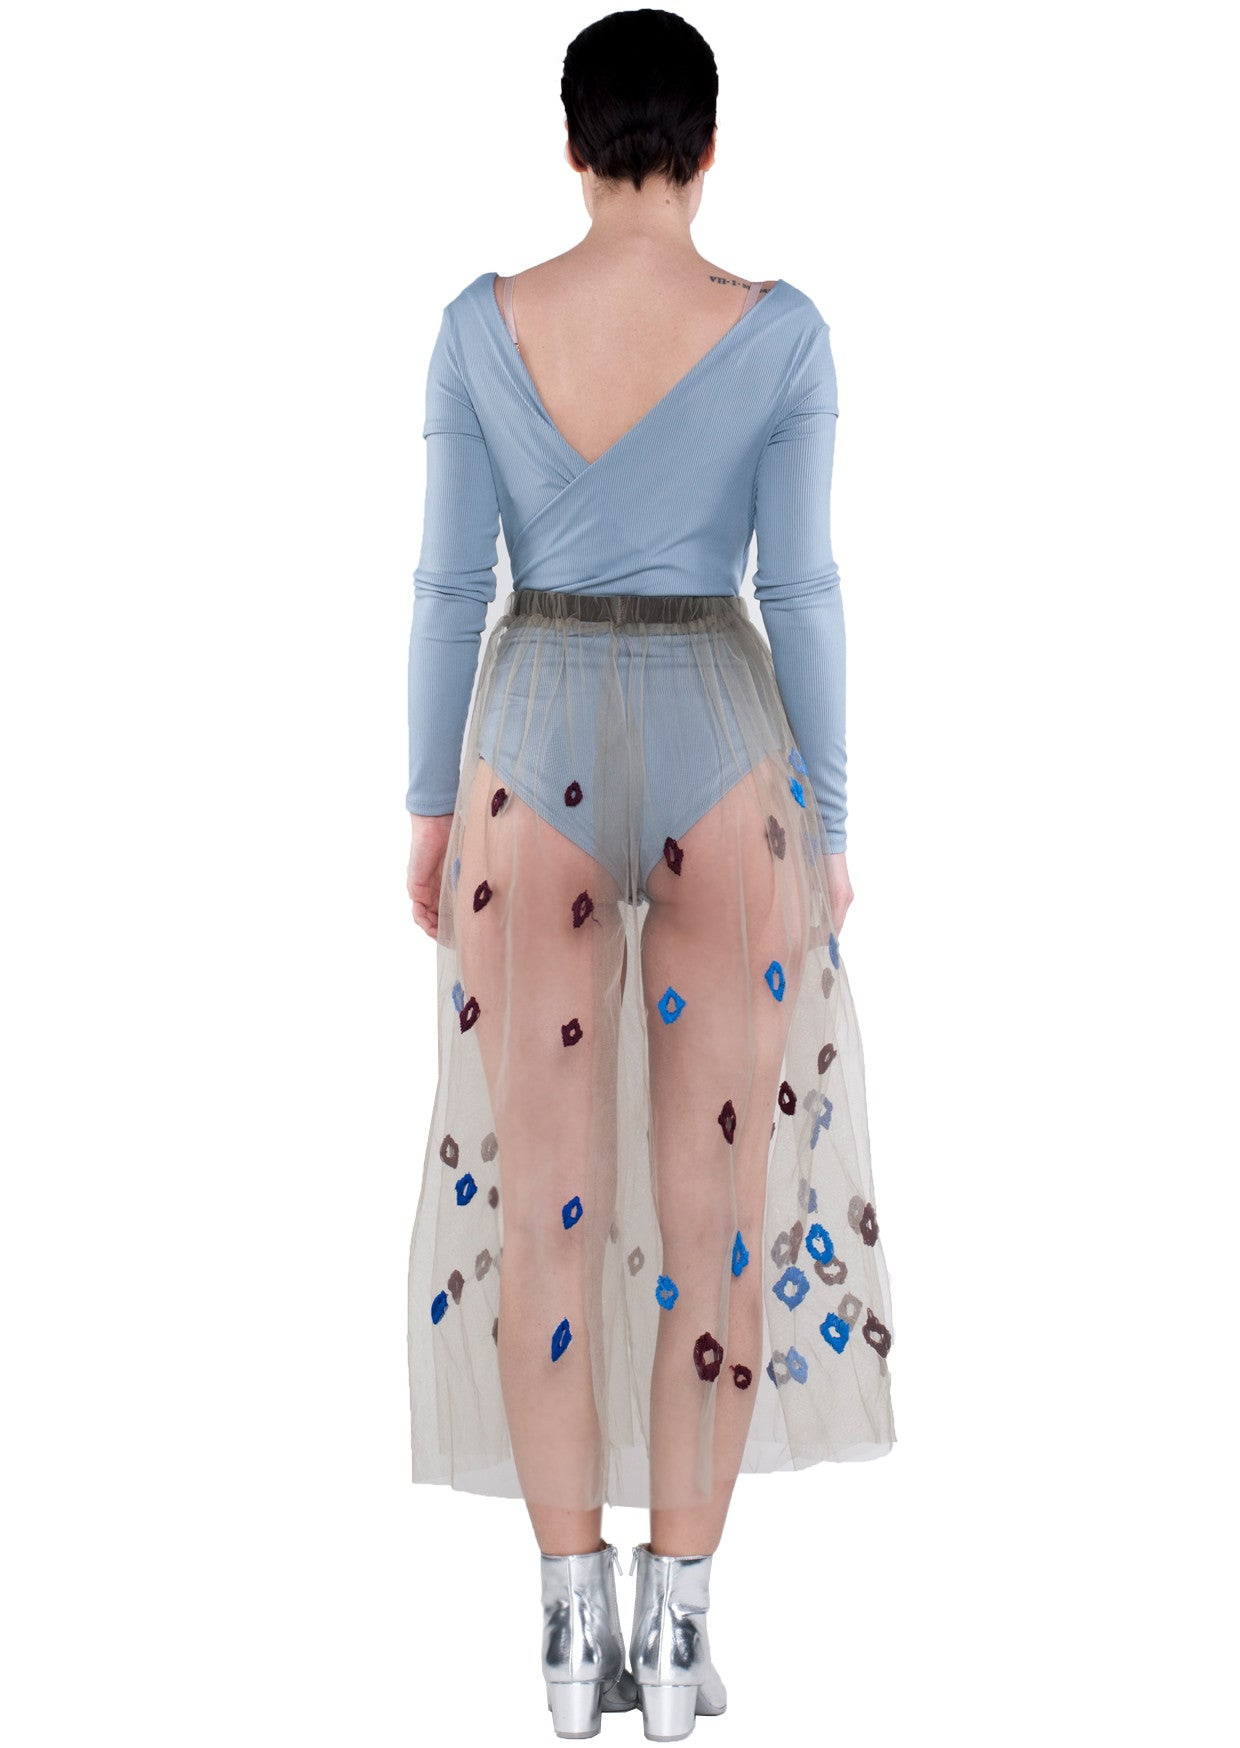 BACK - KRASIMIRA STOYNEVA MESH BLUE FLOWER SKIRT